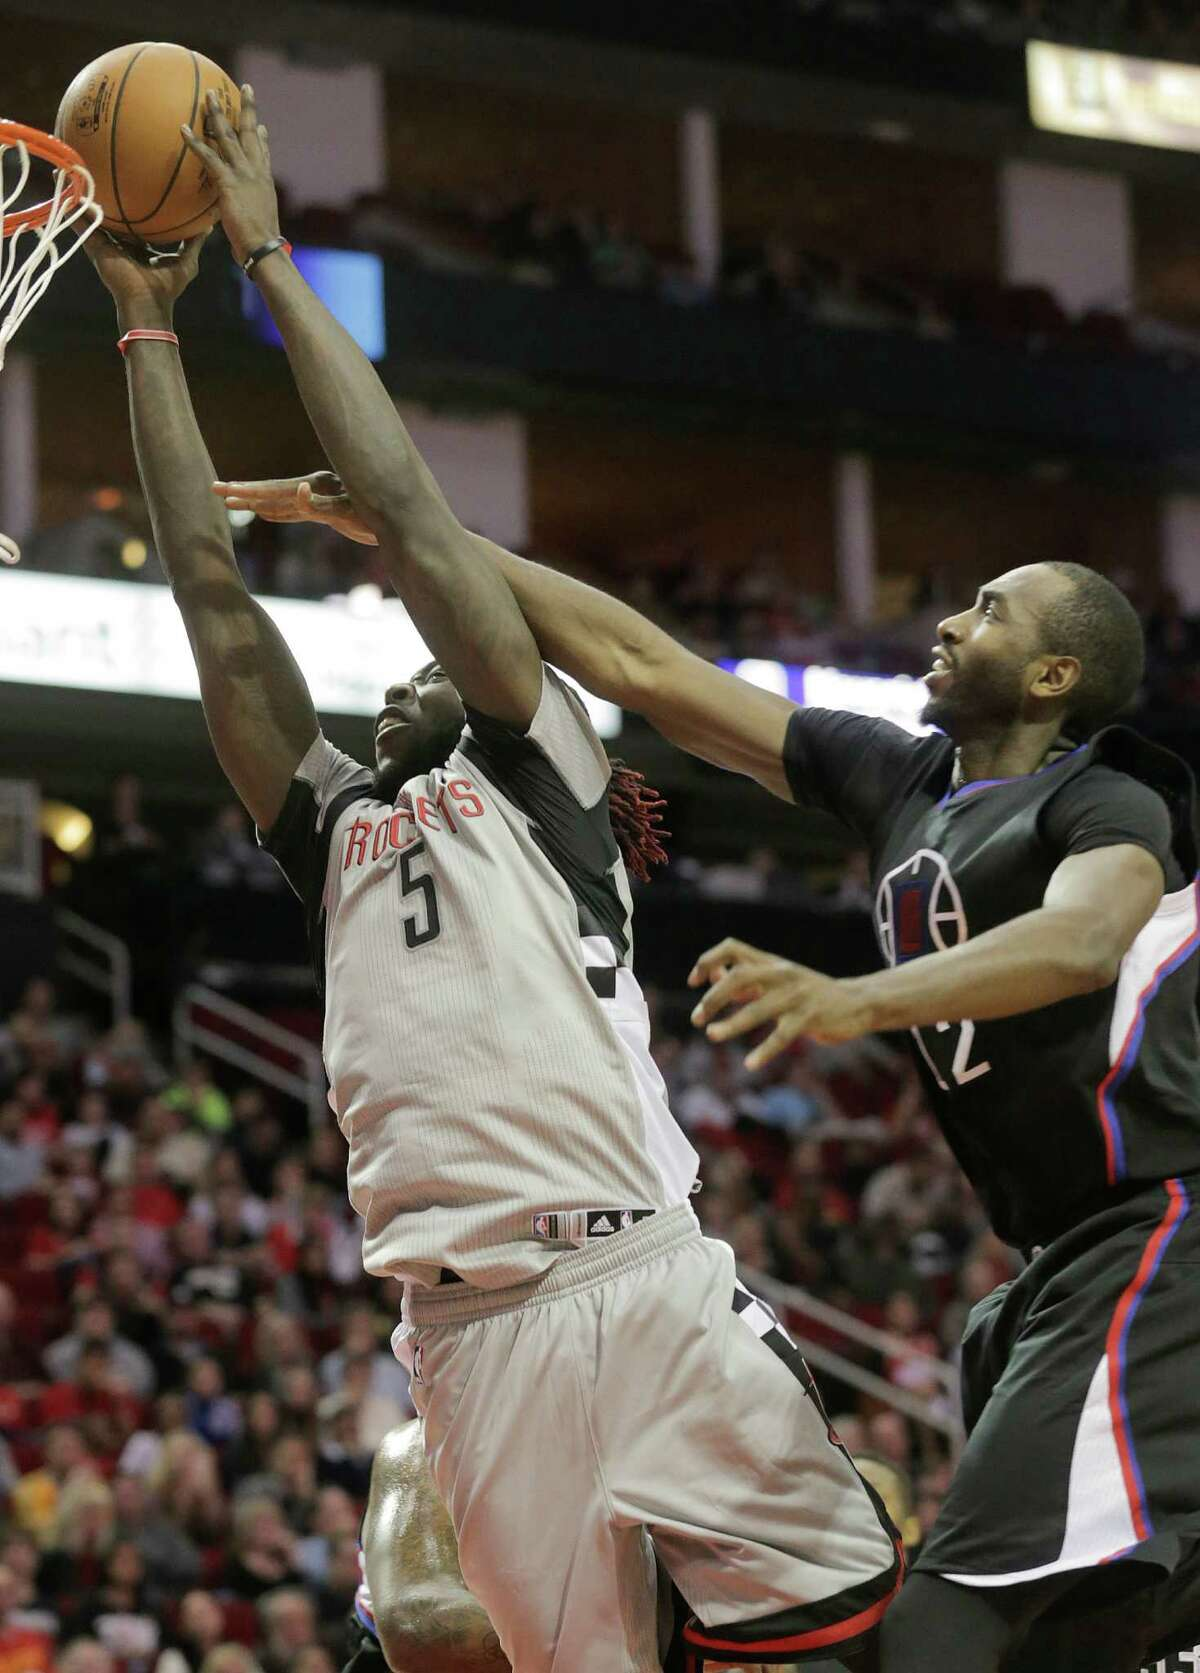 Rockets forward Montrezl Harrell, left, is not deterred by Clippers forward Luc Mbah a Moute's foul as he surges to the rim Friday. Harrell came off the bench and had 29 points on 10-for-14 shooting.